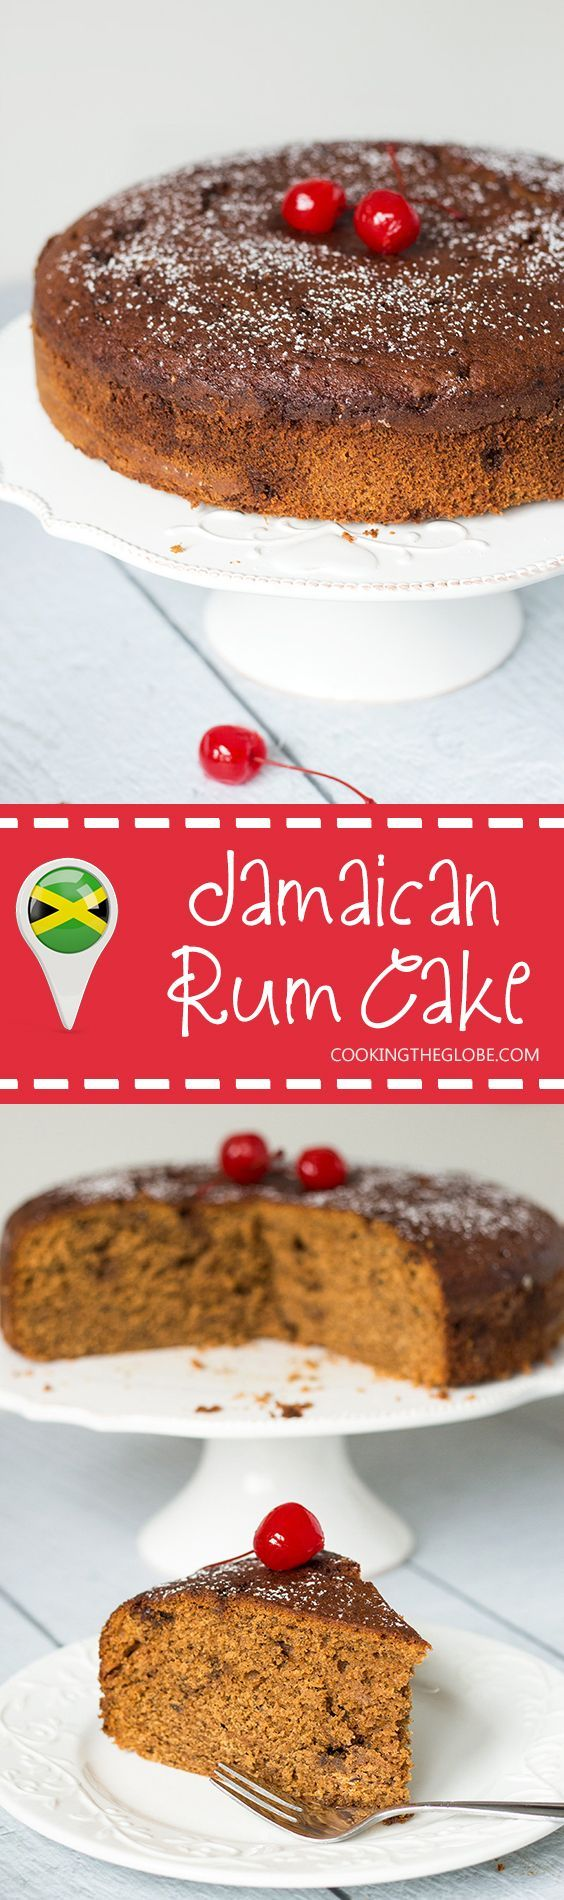 This Jamaican Rum Cake is dark, dense, and filled with rum-soaked dried fruit and Christmassy spices! | http://cookingtheglobe.com